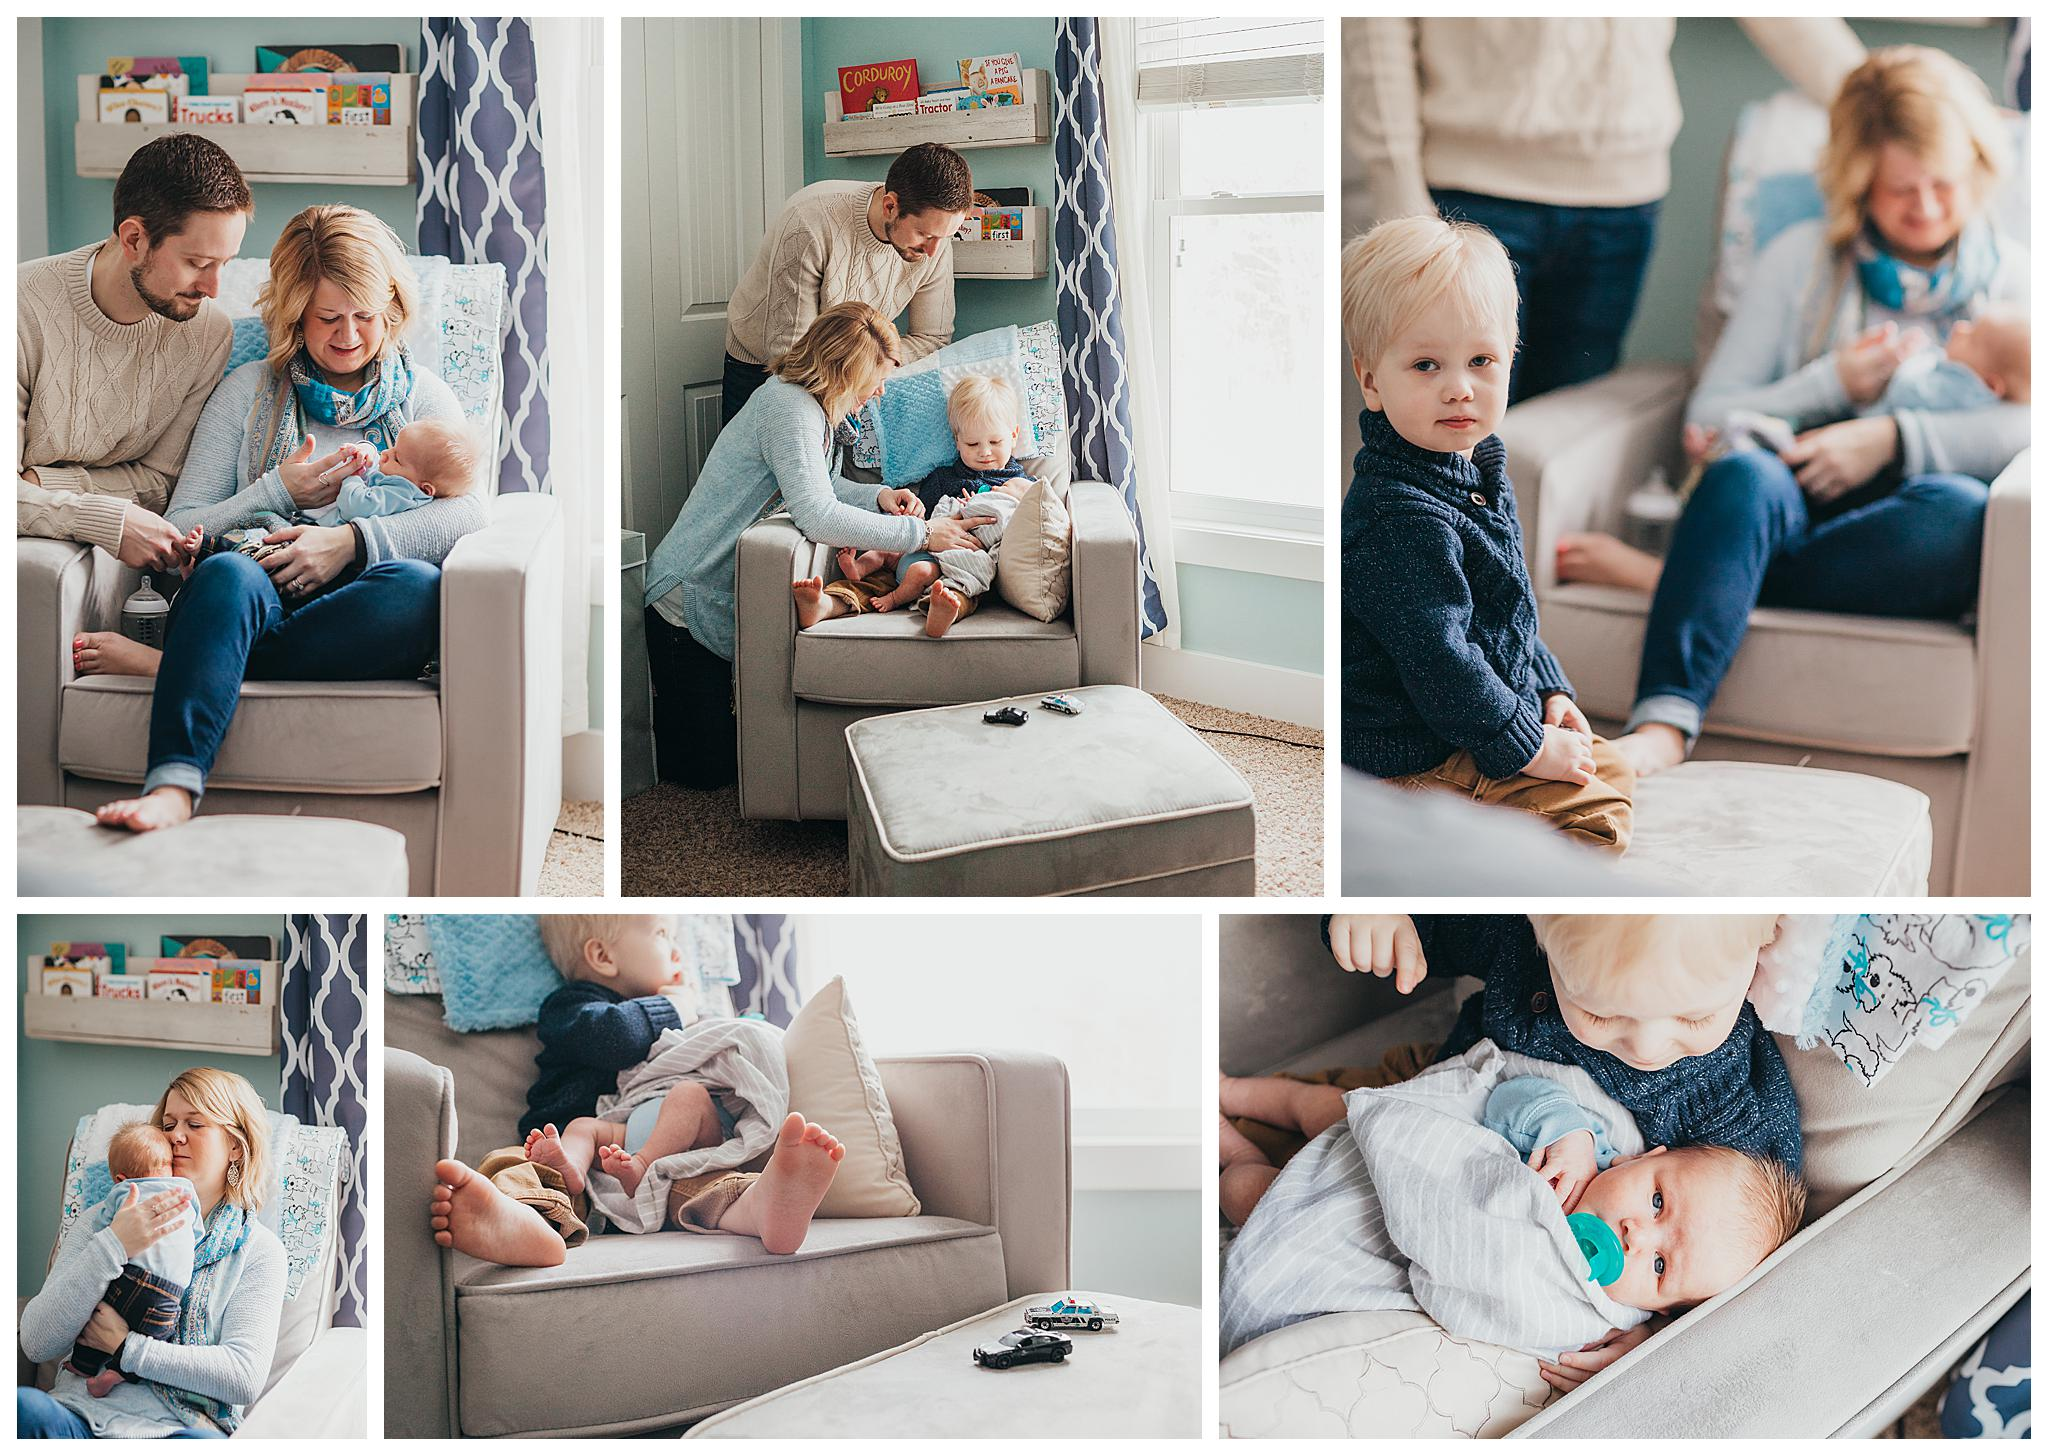 Grand Rapids michigan family and lifestyle newborn photographer serving the Muskegon, grand haven, and holland areas